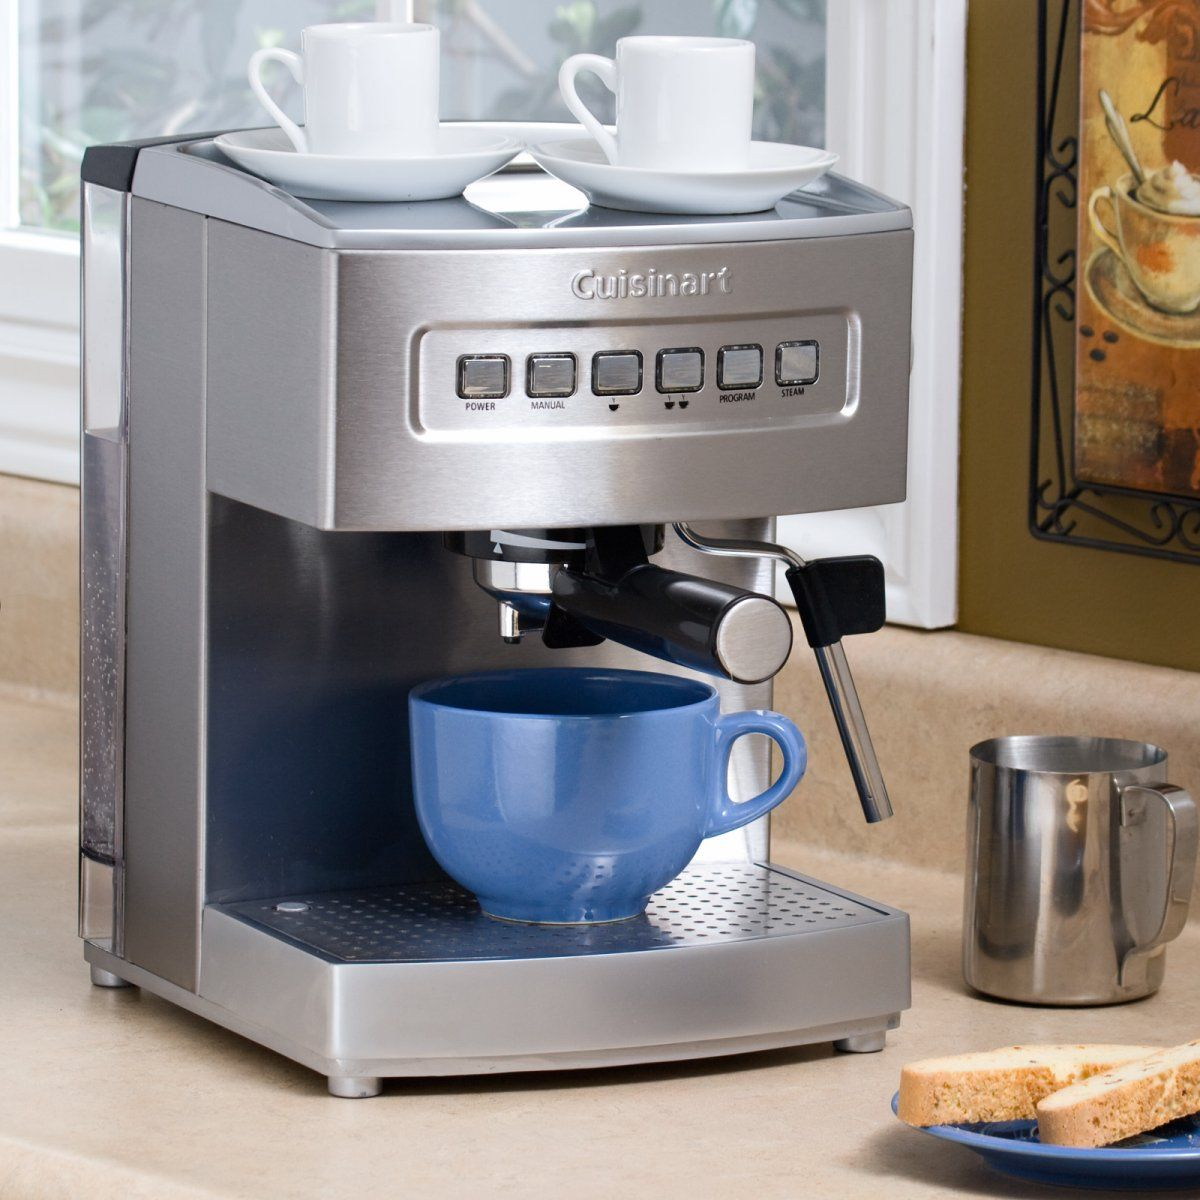 Cuisinart EM-200 Programmable Espresso Maker | www.hayneedle.com | Espresso machine, Espresso, Espresso machine reviews